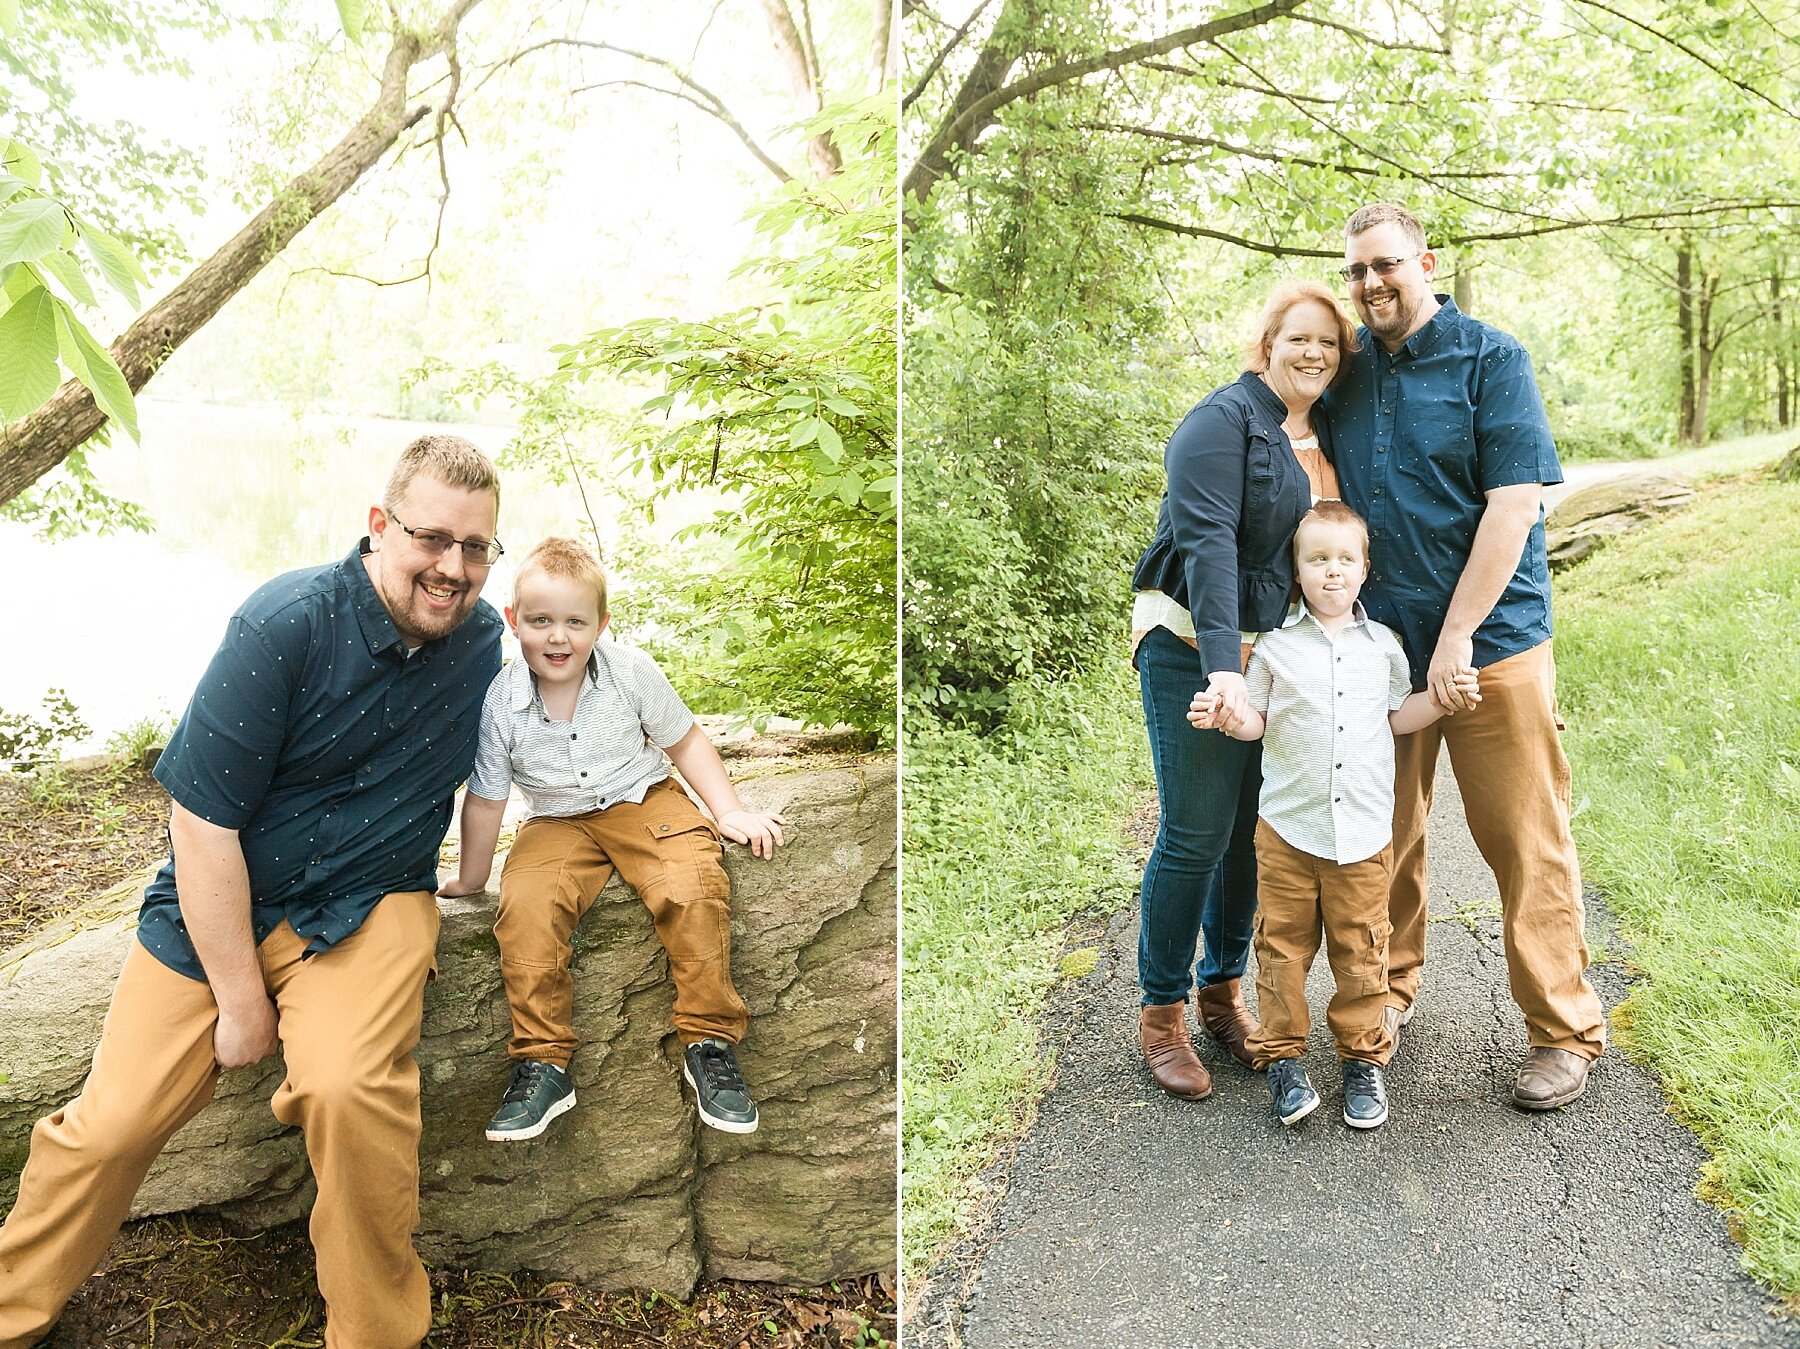 Wendy Zook Photography | Special needs family, family with special needs, P.A.N.D.A.S, P.A.N.S, diagnosis, family photos